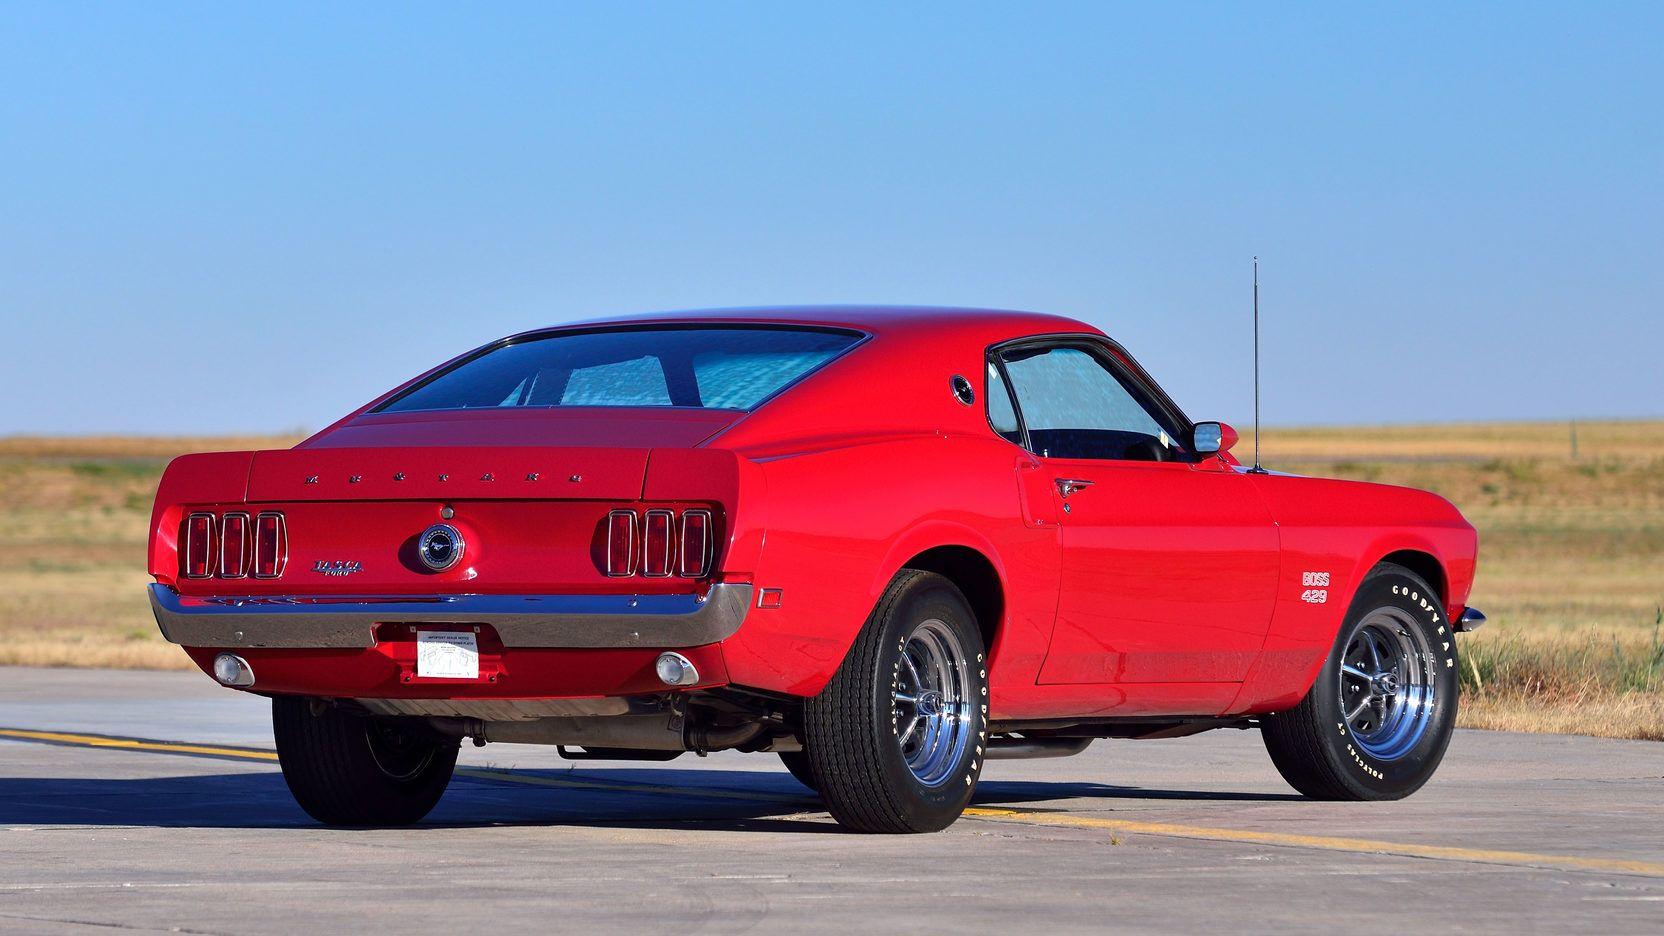 1969 Ford Mustang Boss 429 In Candy Apple Red Kk 1663 Ford Mustang Boss Ford Mustang Ford Mustang Shelby Cobra